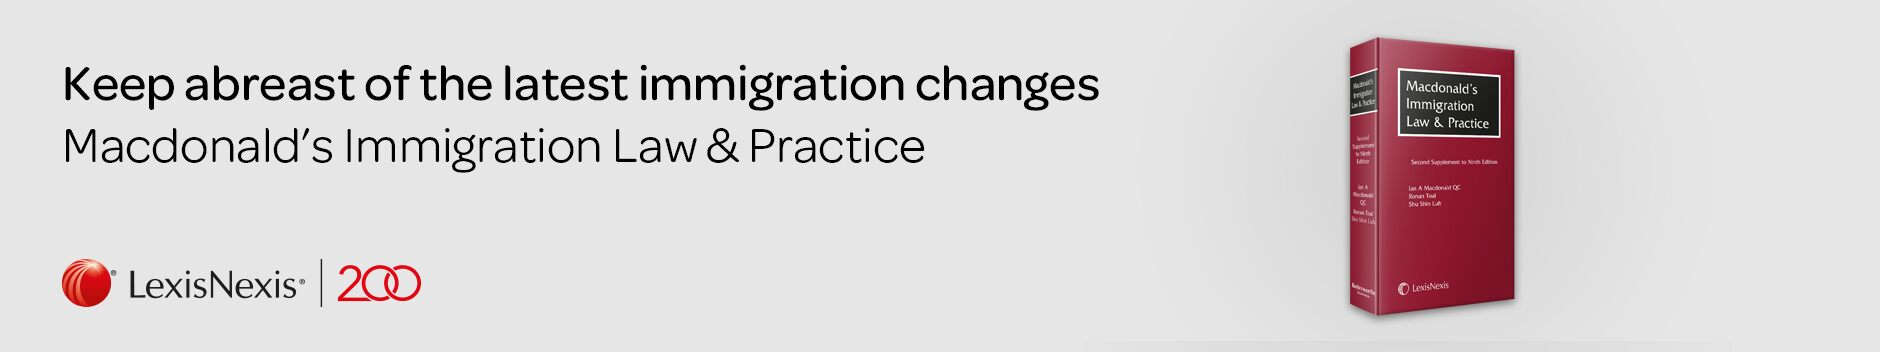 Macdonald's Immigration Law & Practice promo